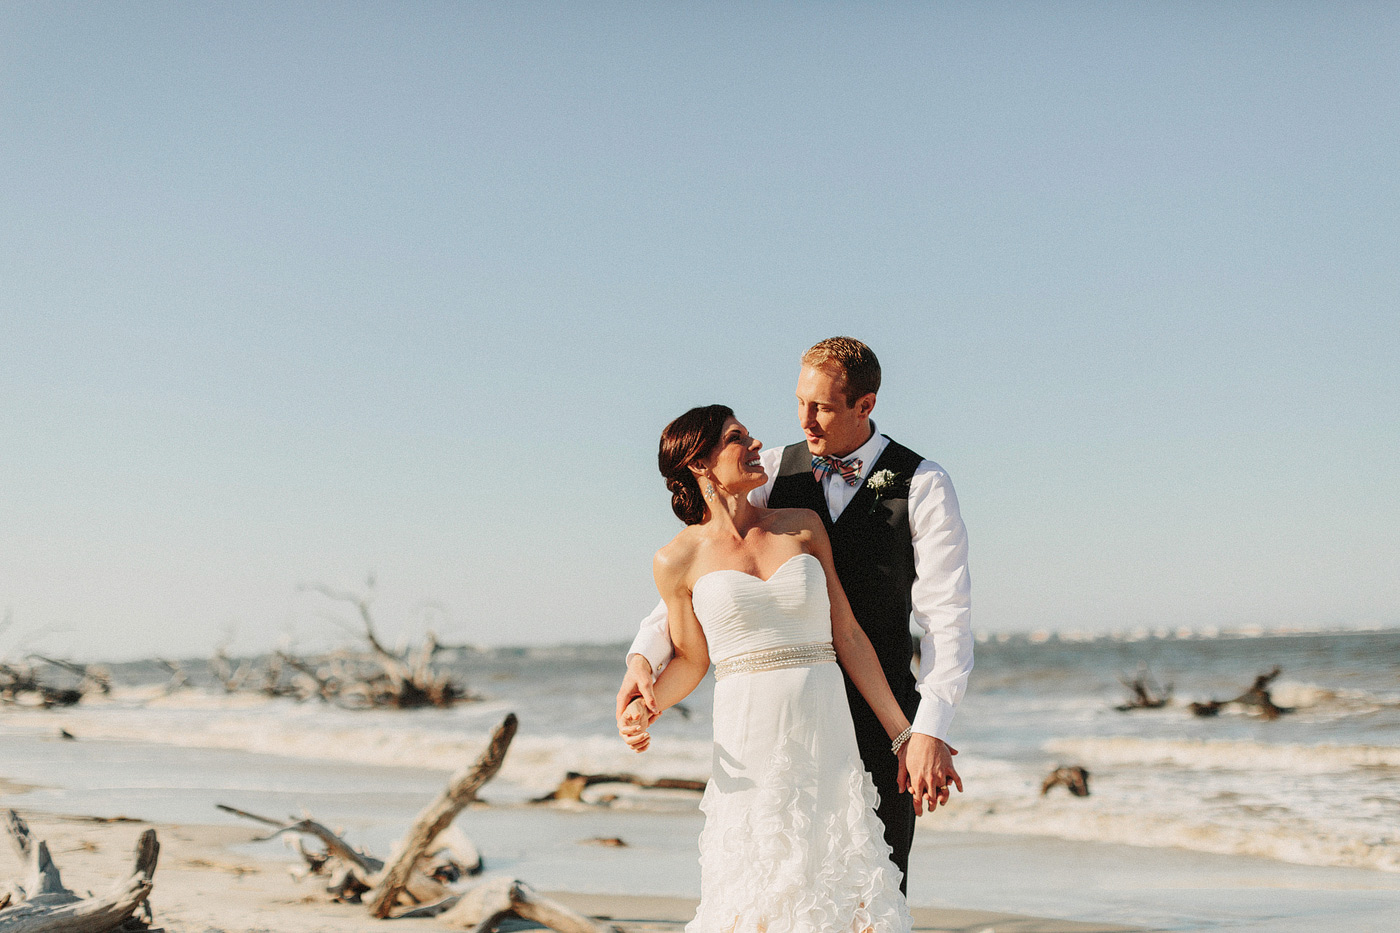 beach portrait bride and groom driftwood georgia destination wed